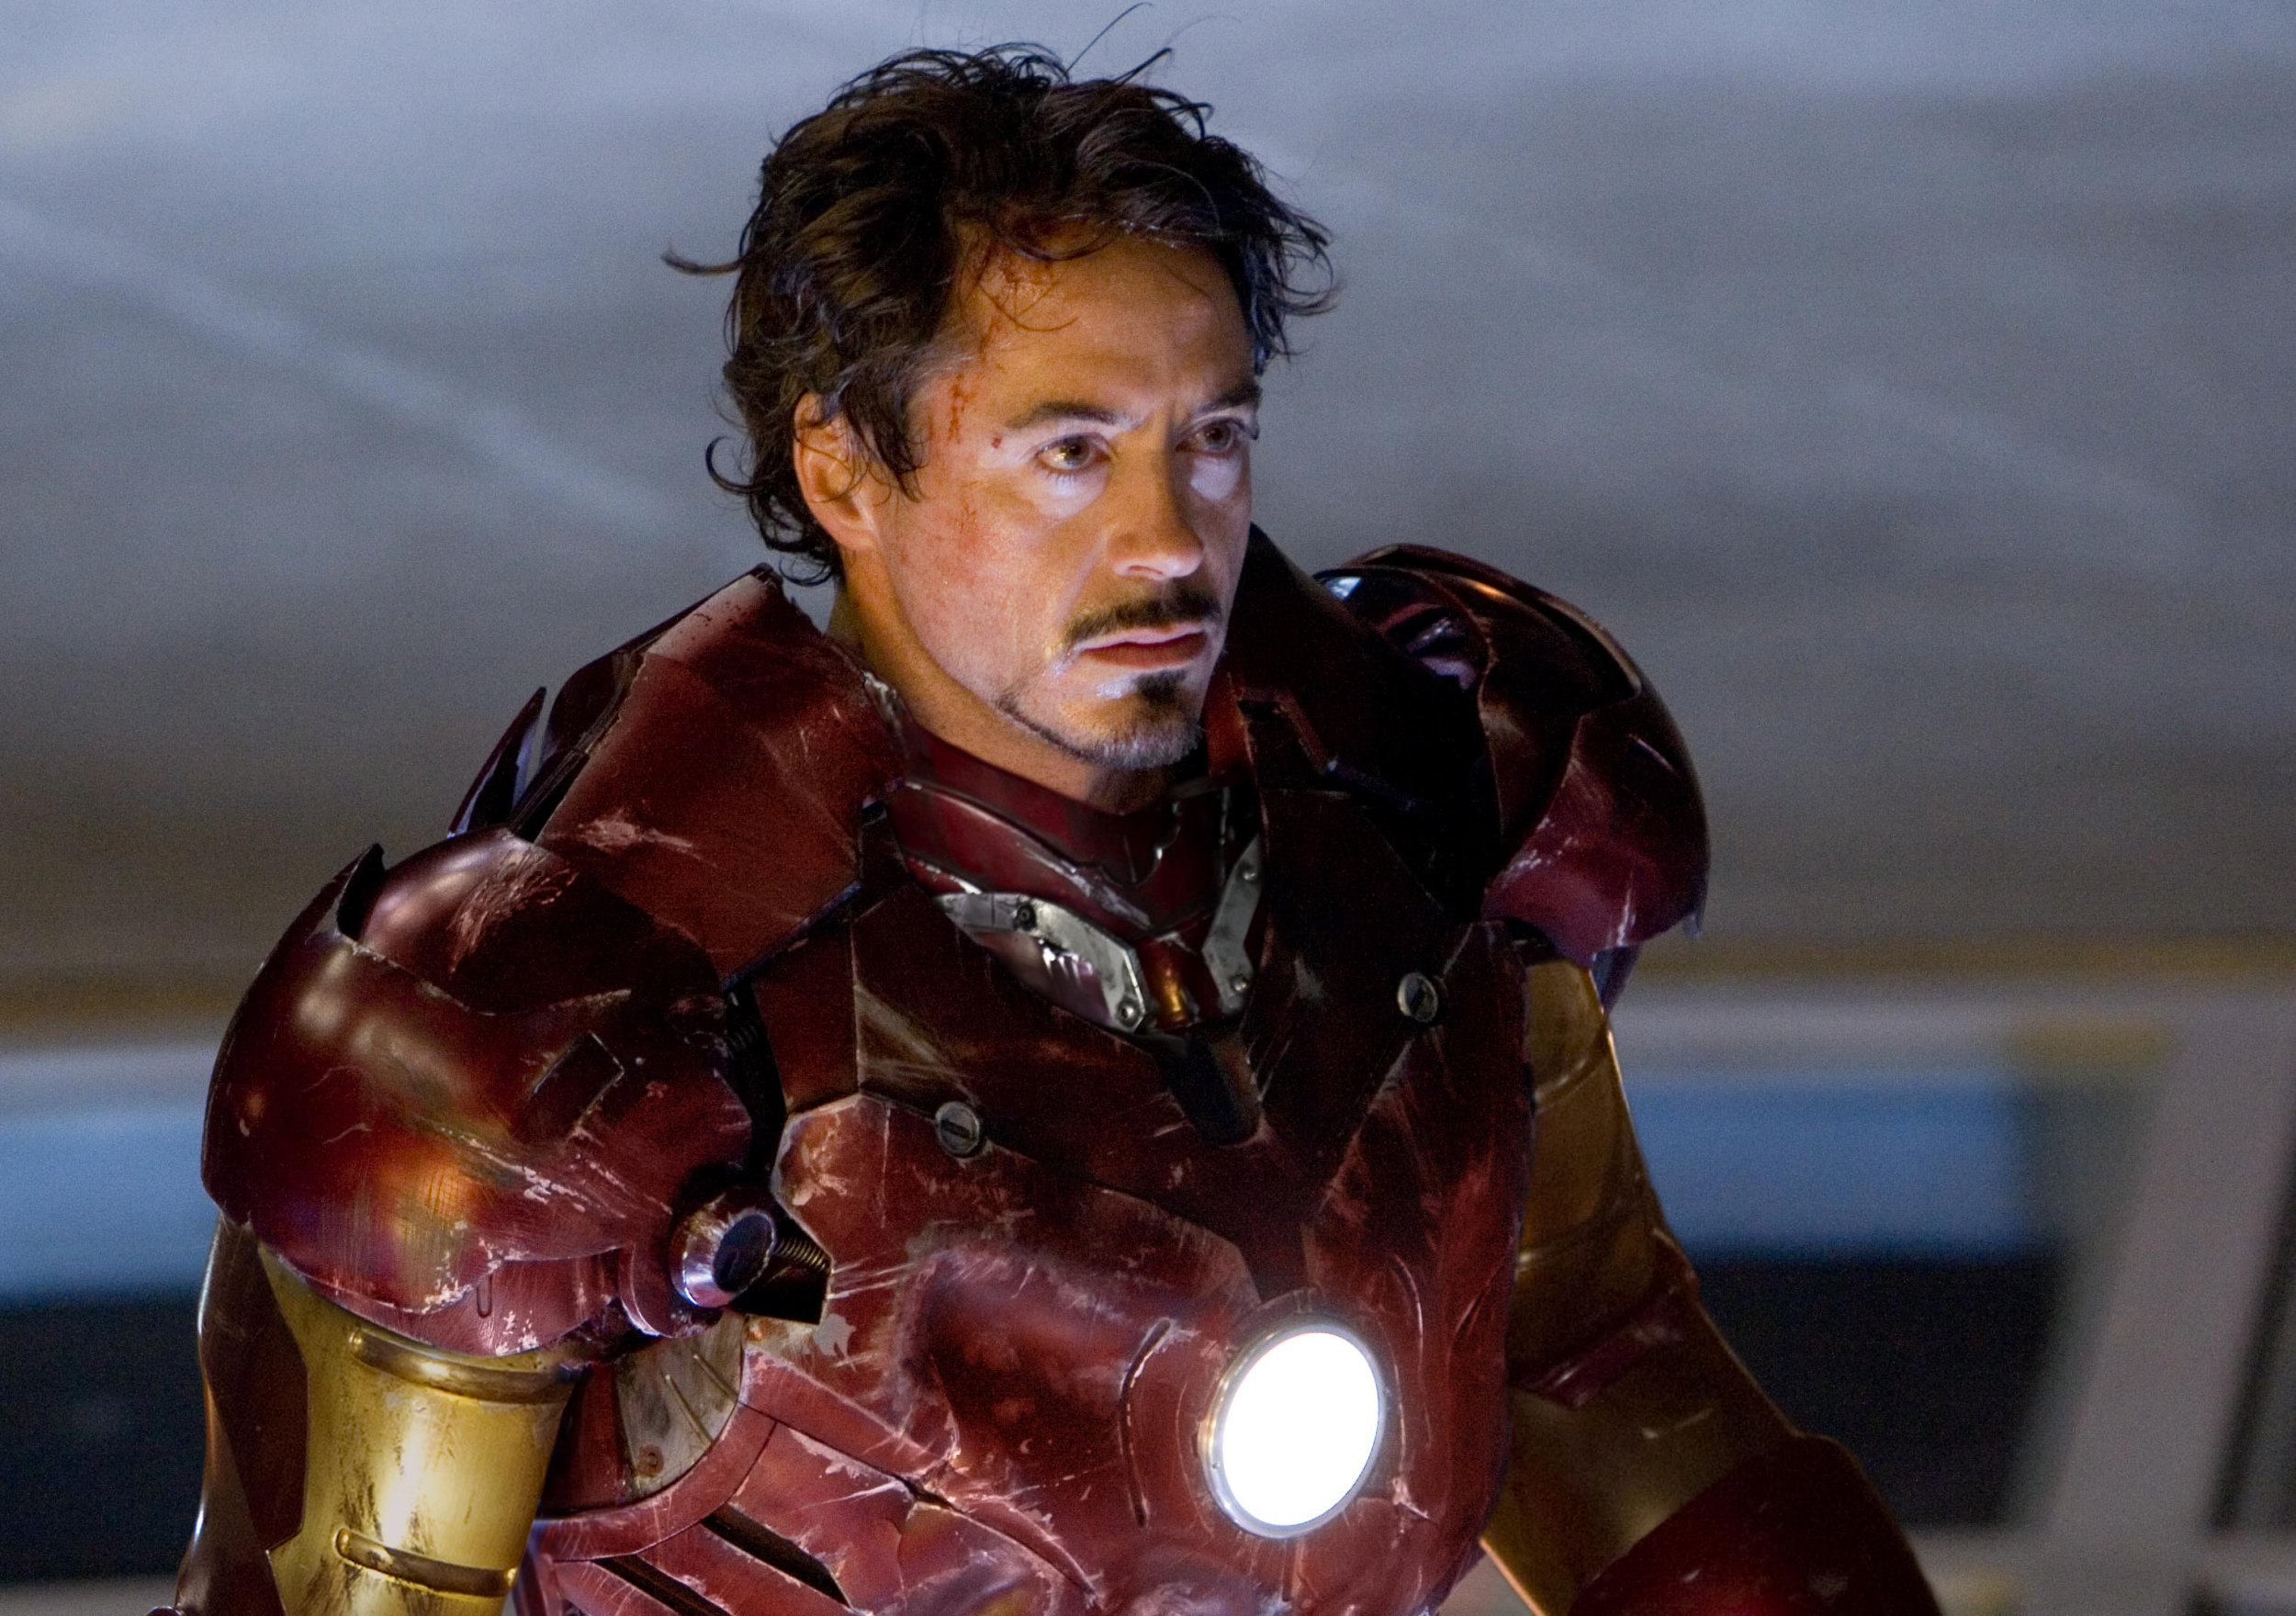 No Merchandising. Editorial Use Only. No Book Cover Usage. Mandatory Credit: Photo by Marvel/Paramount/Kobal/REX/Shutterstock (5886260f) Robert Downey Jr Iron Man - 2008 Director: Jon Favreau Marvel/Paramount USA Scene Still Animation Ironman